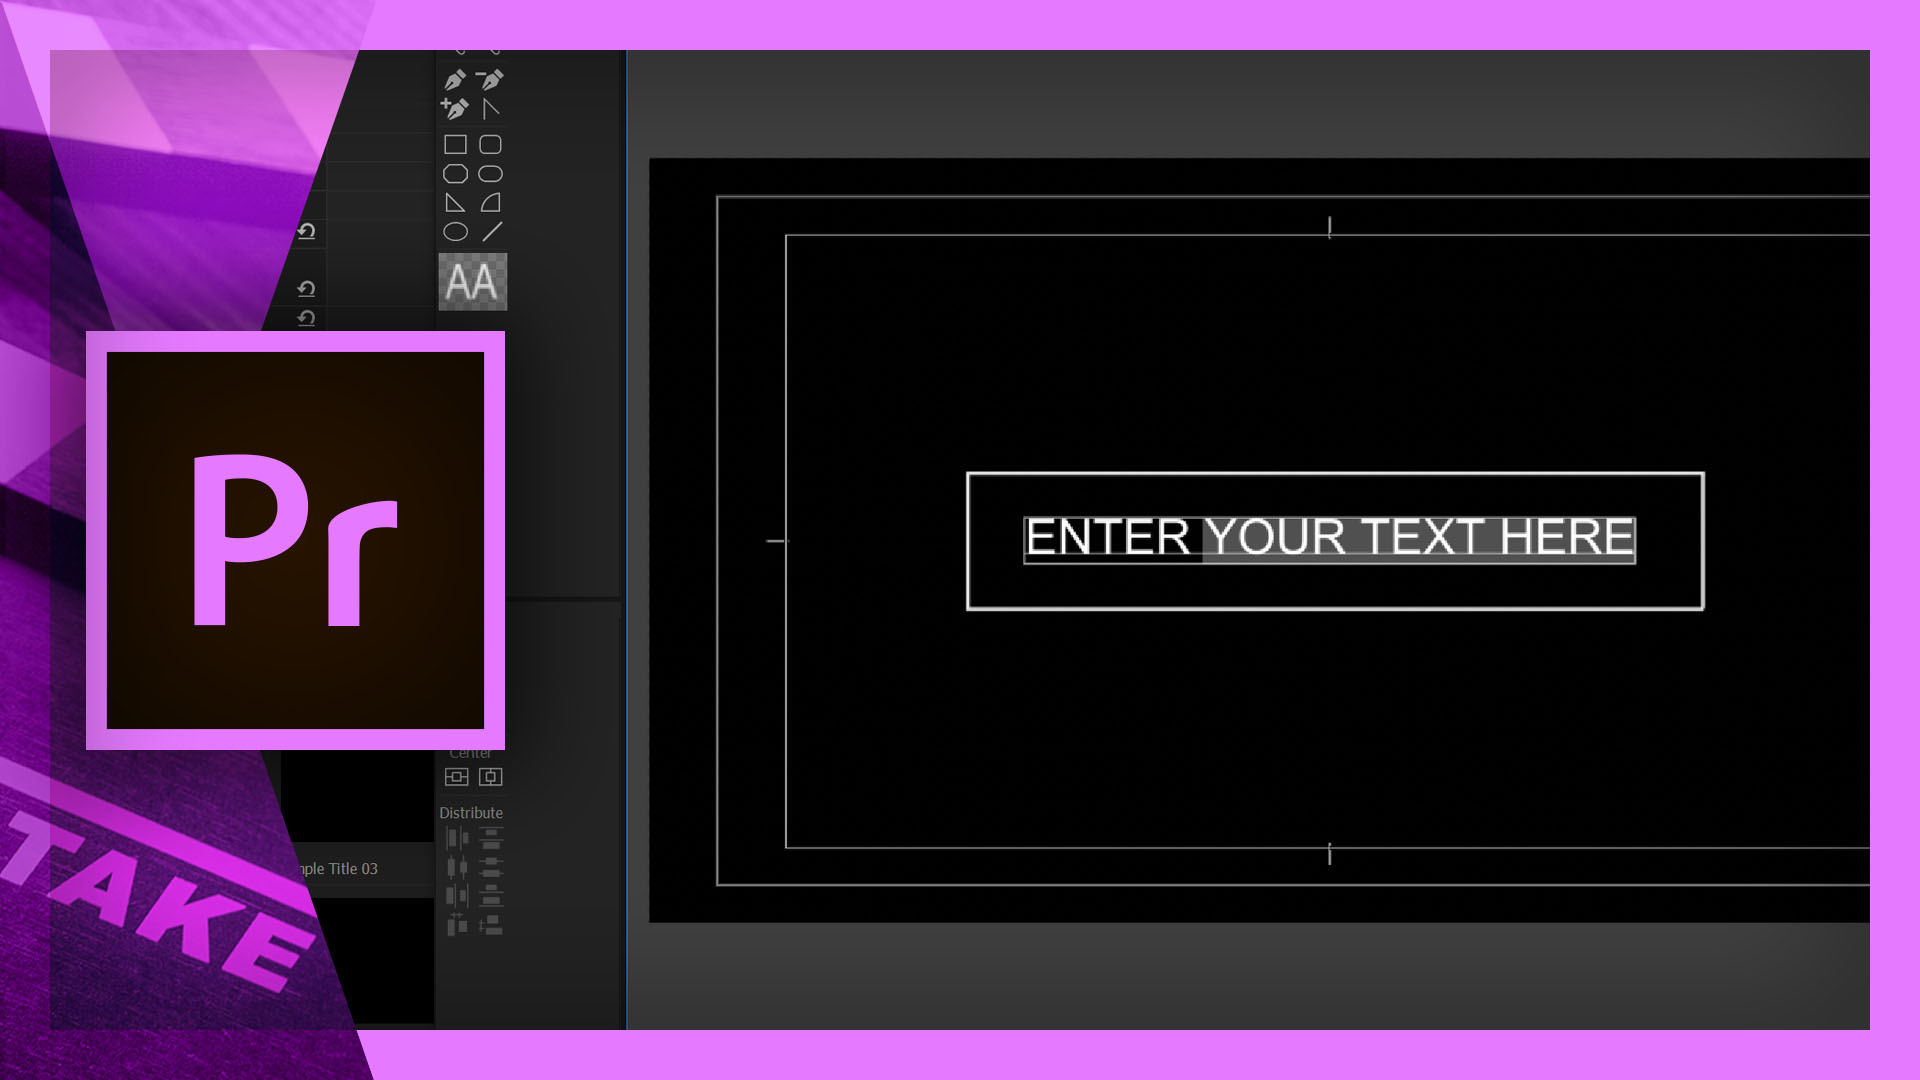 How to use simple titles in premiere pro cinecomnet for Premiere pro animated title templates